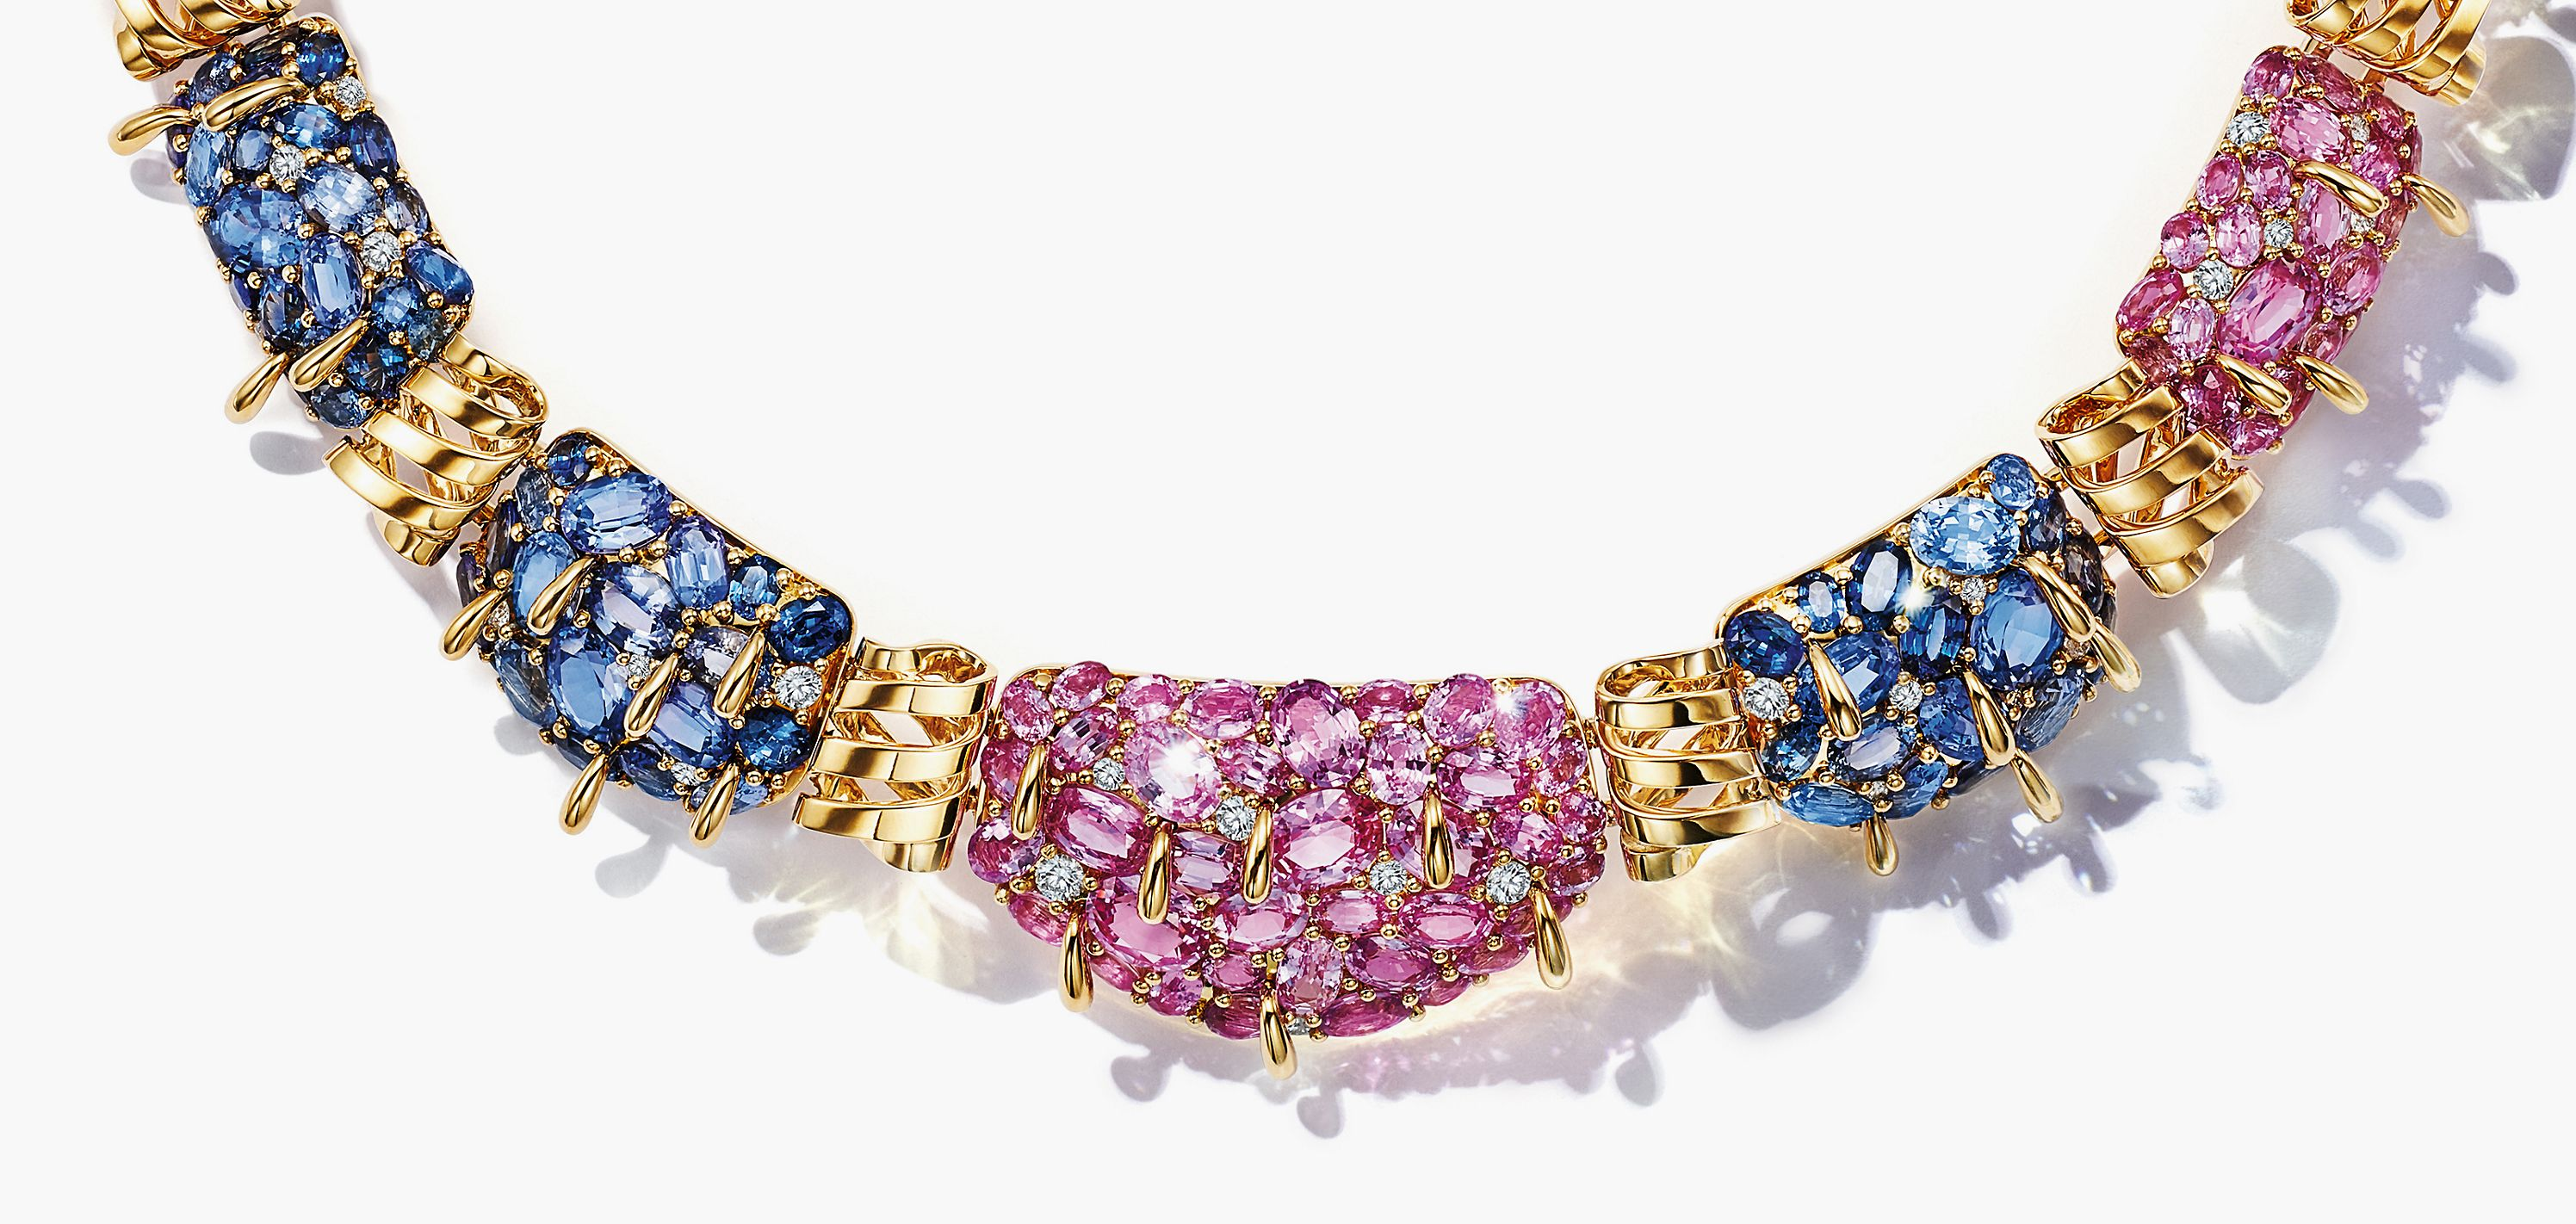 Jean Schlumberger High Jewellery Collection